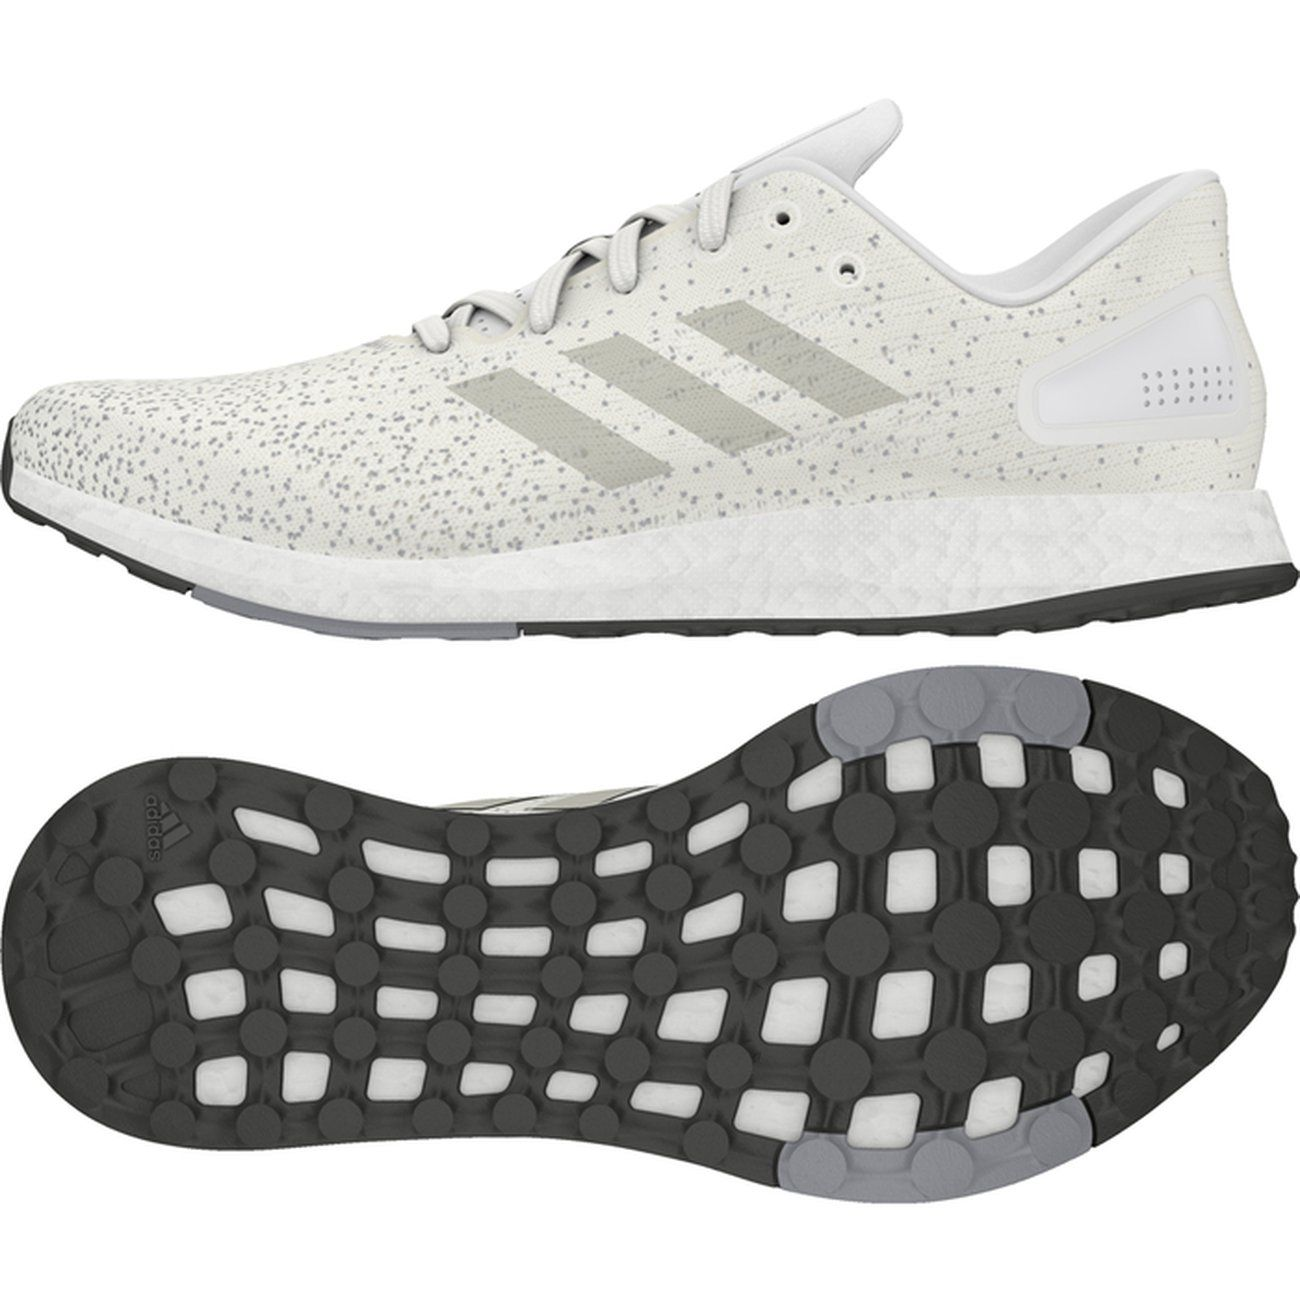 reputable site 52168 3ca8d CHAUSSURES BASSES running homme ADIDAS PureBOOST DPR M, ...